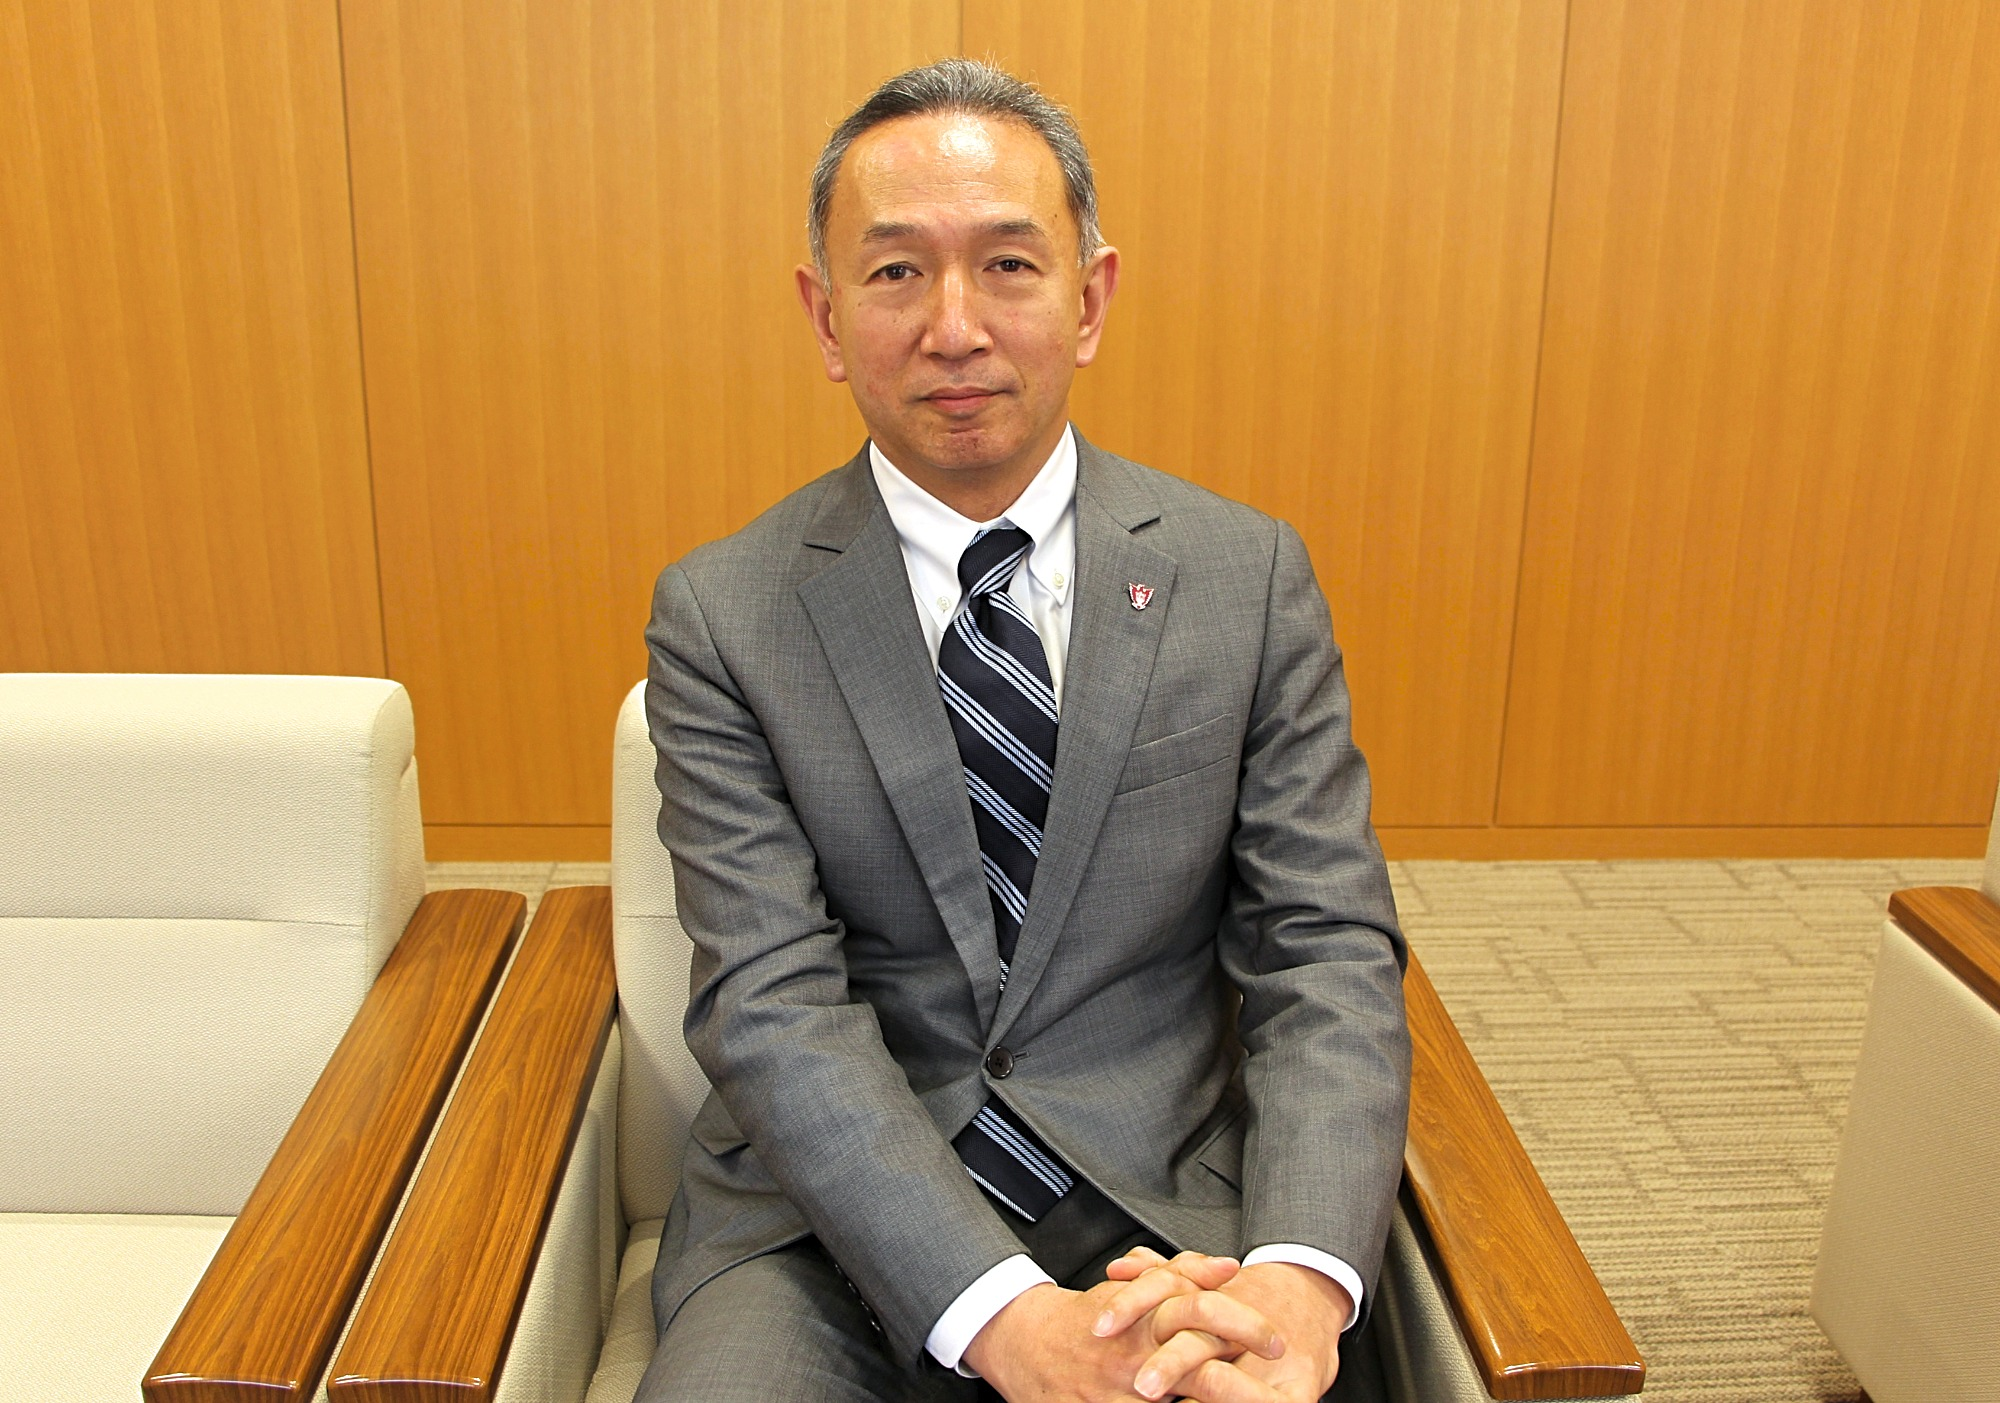 Interview: Sophia University President Mr. Yoshiaki Terumichi